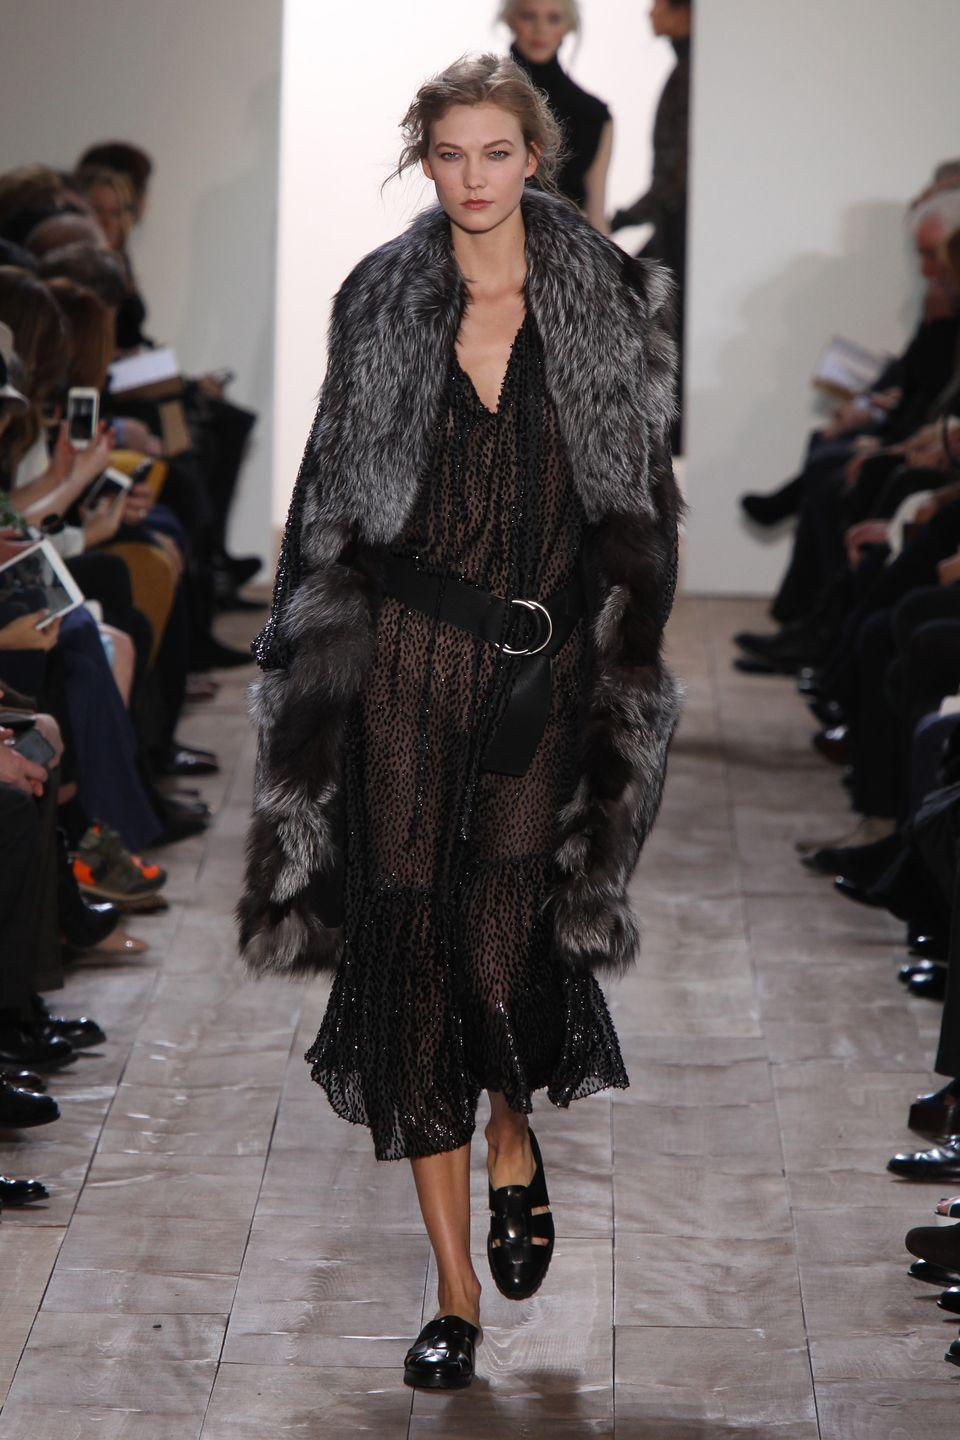 <p>Karlie Kloss walked the Michael Kors 2014 fall fashion show in a sheer dress, fur coat, and belt.</p>